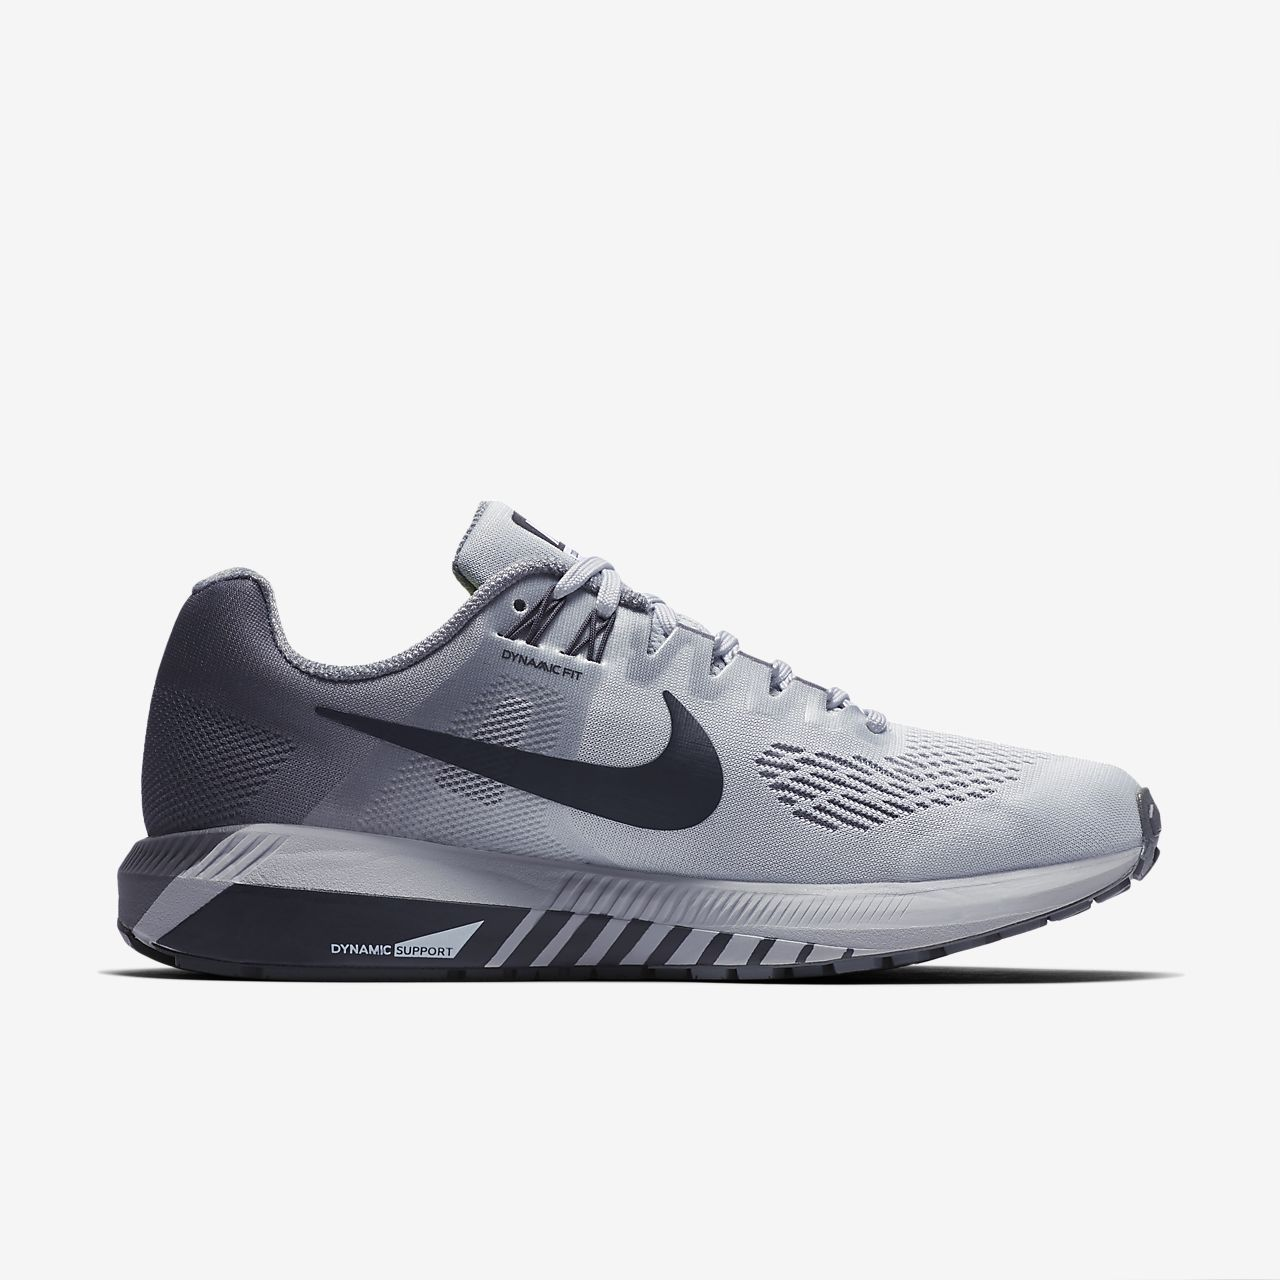 Nike Mens Air Zoom Structure 21 Running Shoes Cloutshoes Com Nike Men Running Shoes For Men Nike Air Zoom